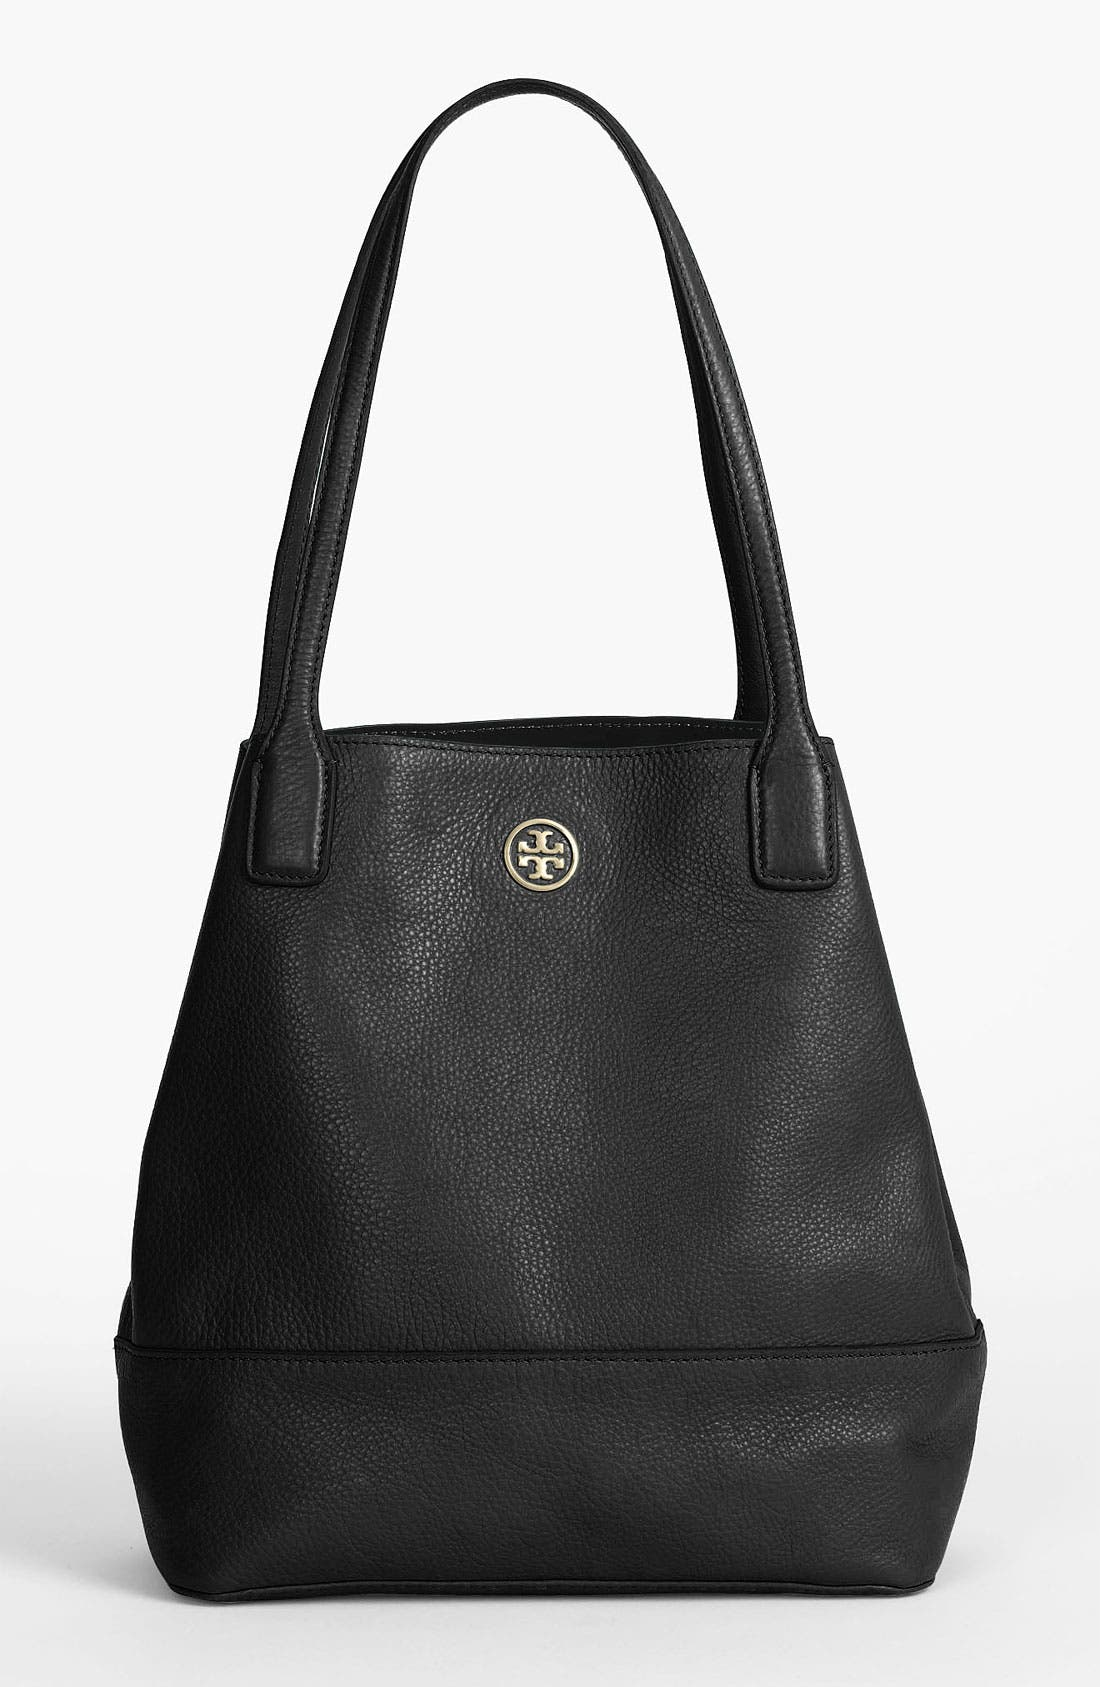 Alternate Image 1 Selected - Tory Burch 'Michelle Angelux - Small' Tote